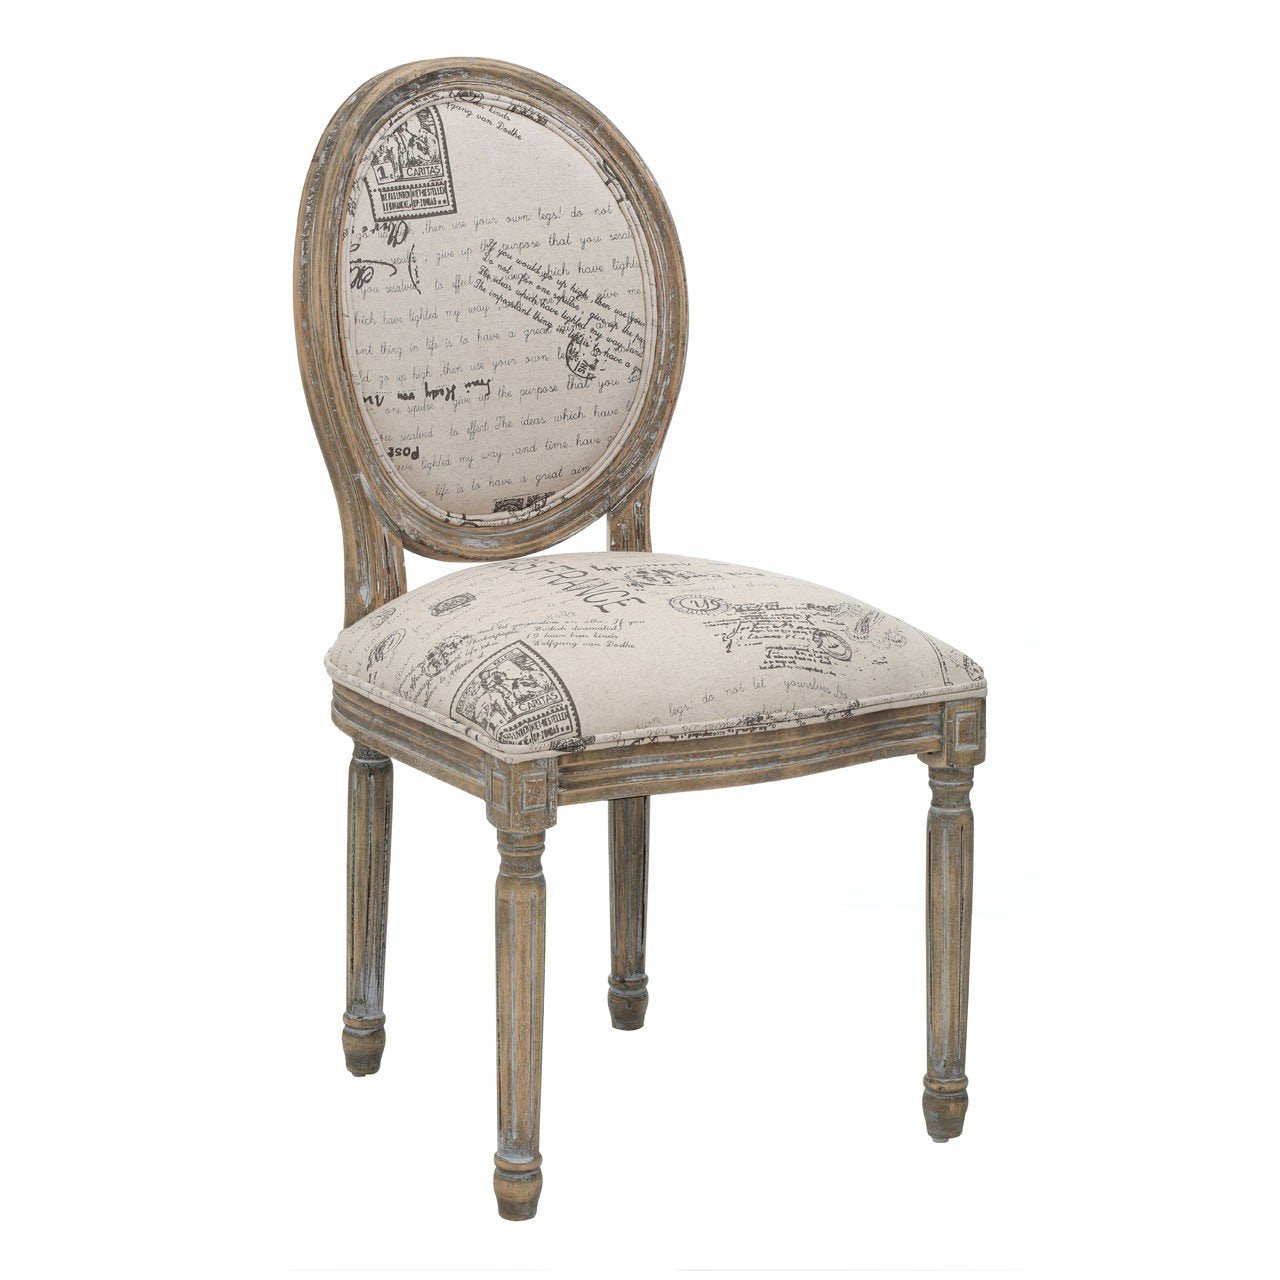 Francois Chair Quotes in Furniture | Retail Therapy Interiors